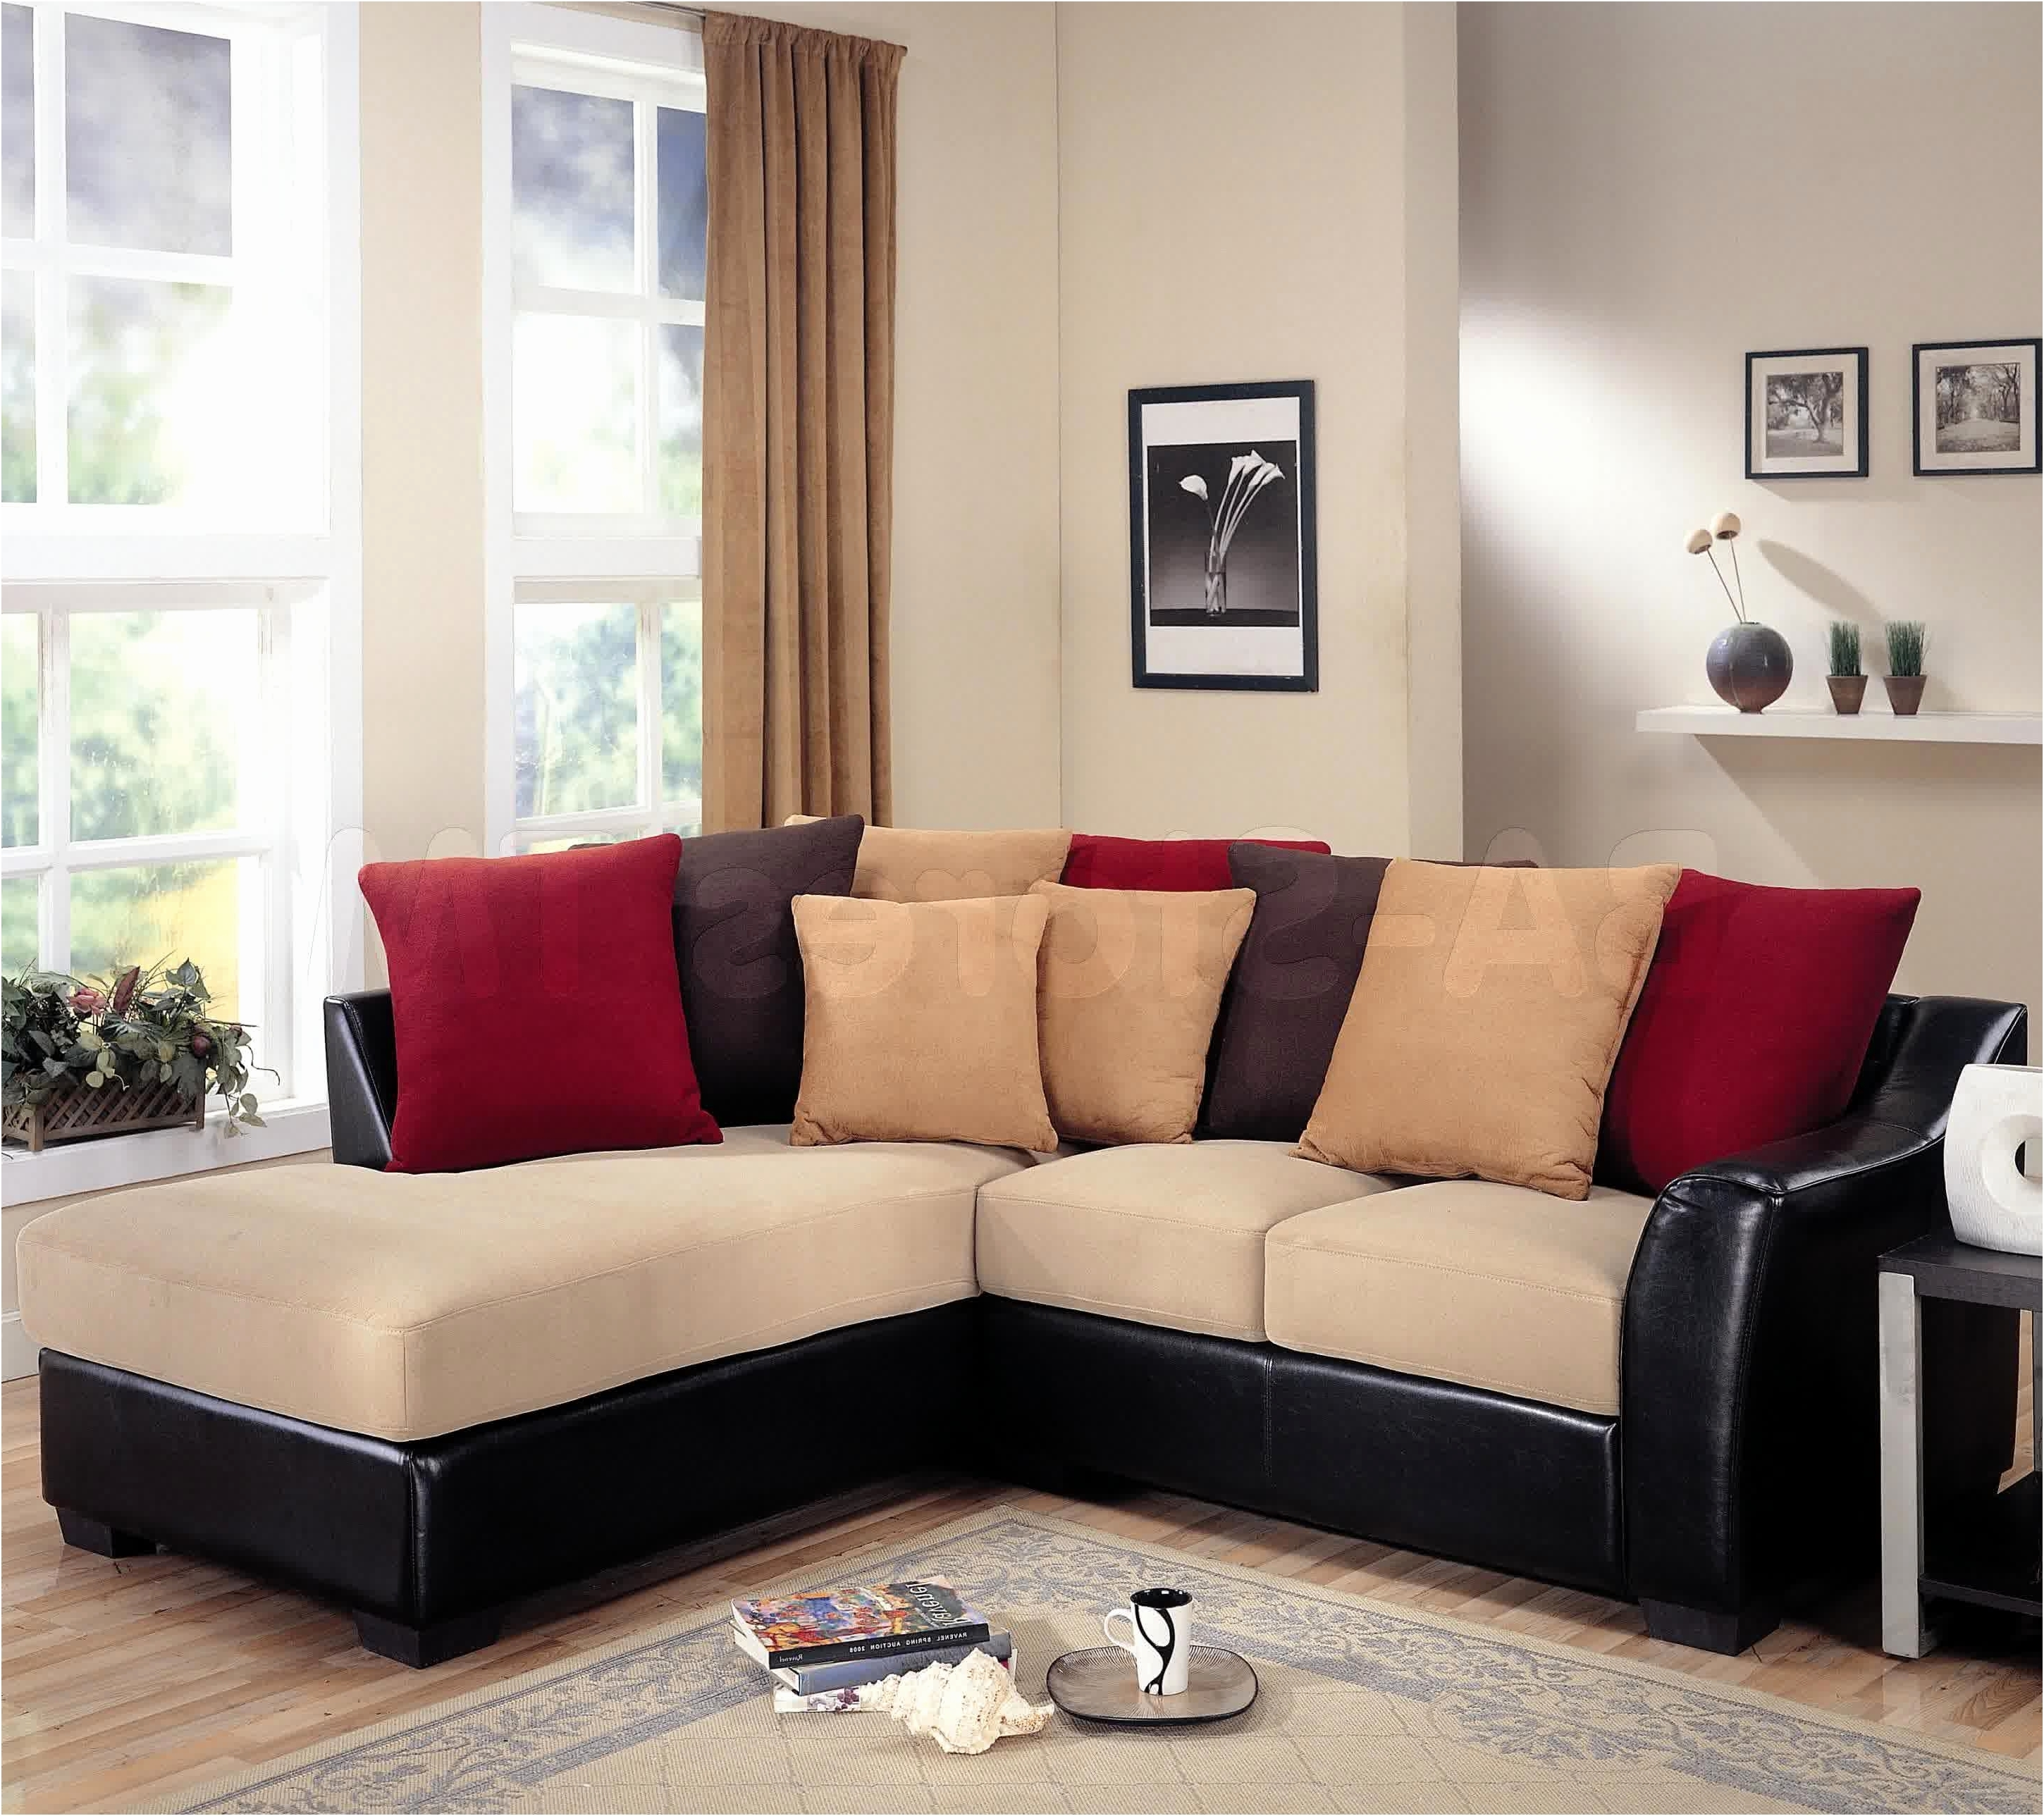 Trendy Fresh Sears Leather Sofa New – Intuisiblog With Sears Sectional Sofas (View 11 of 15)